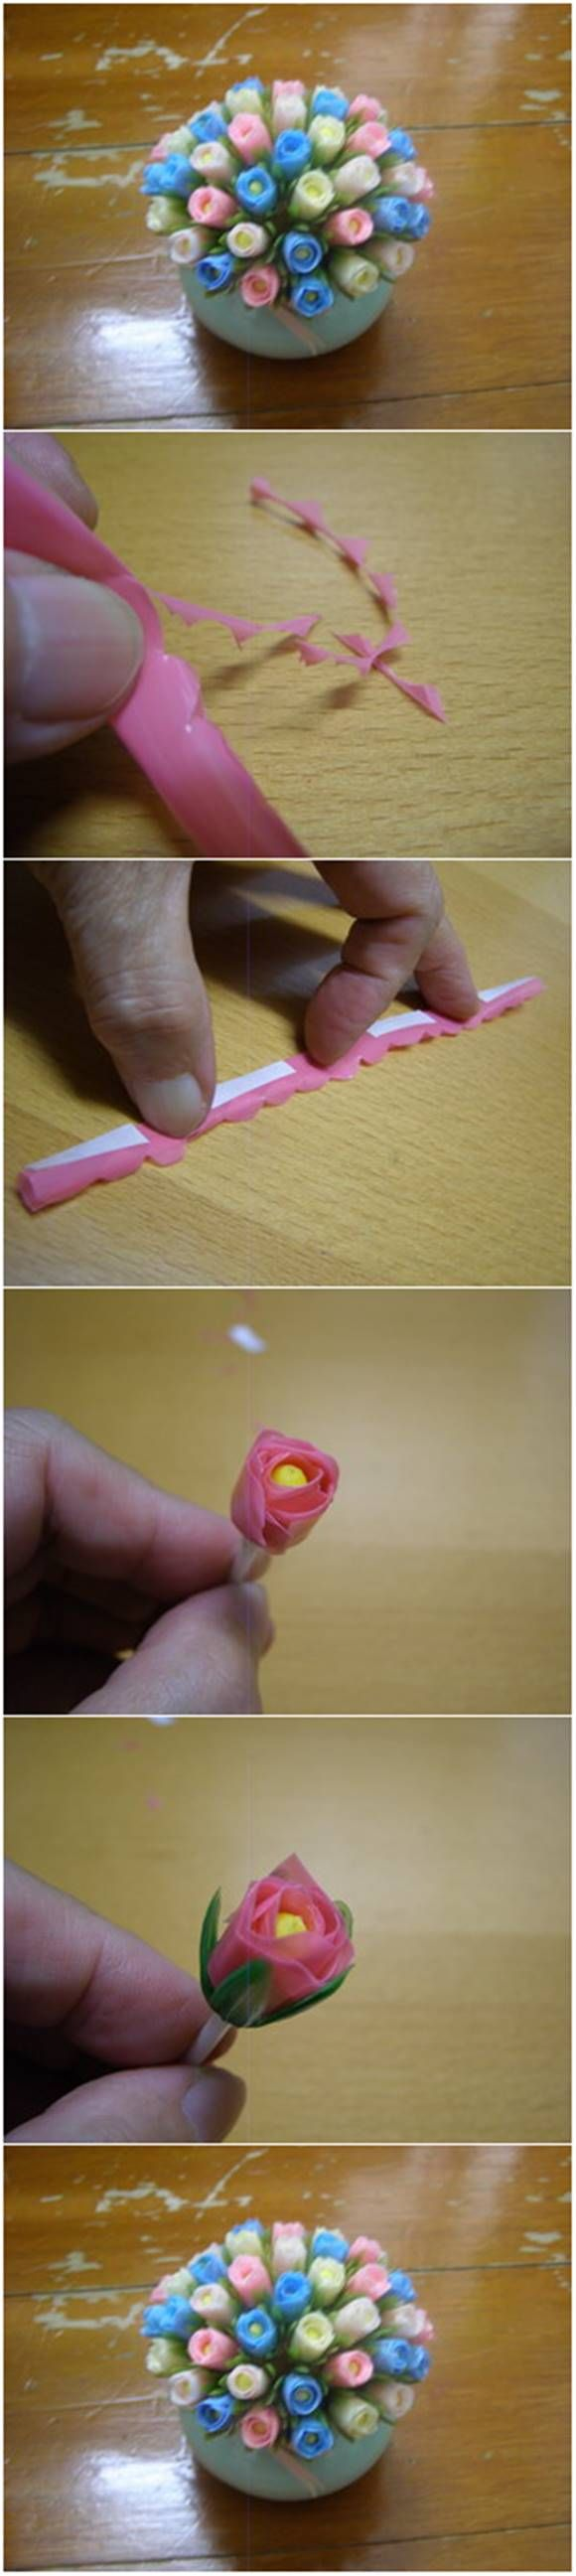 How to Make Beautiful Tulips from Drinking Straws #craft #flower #decor